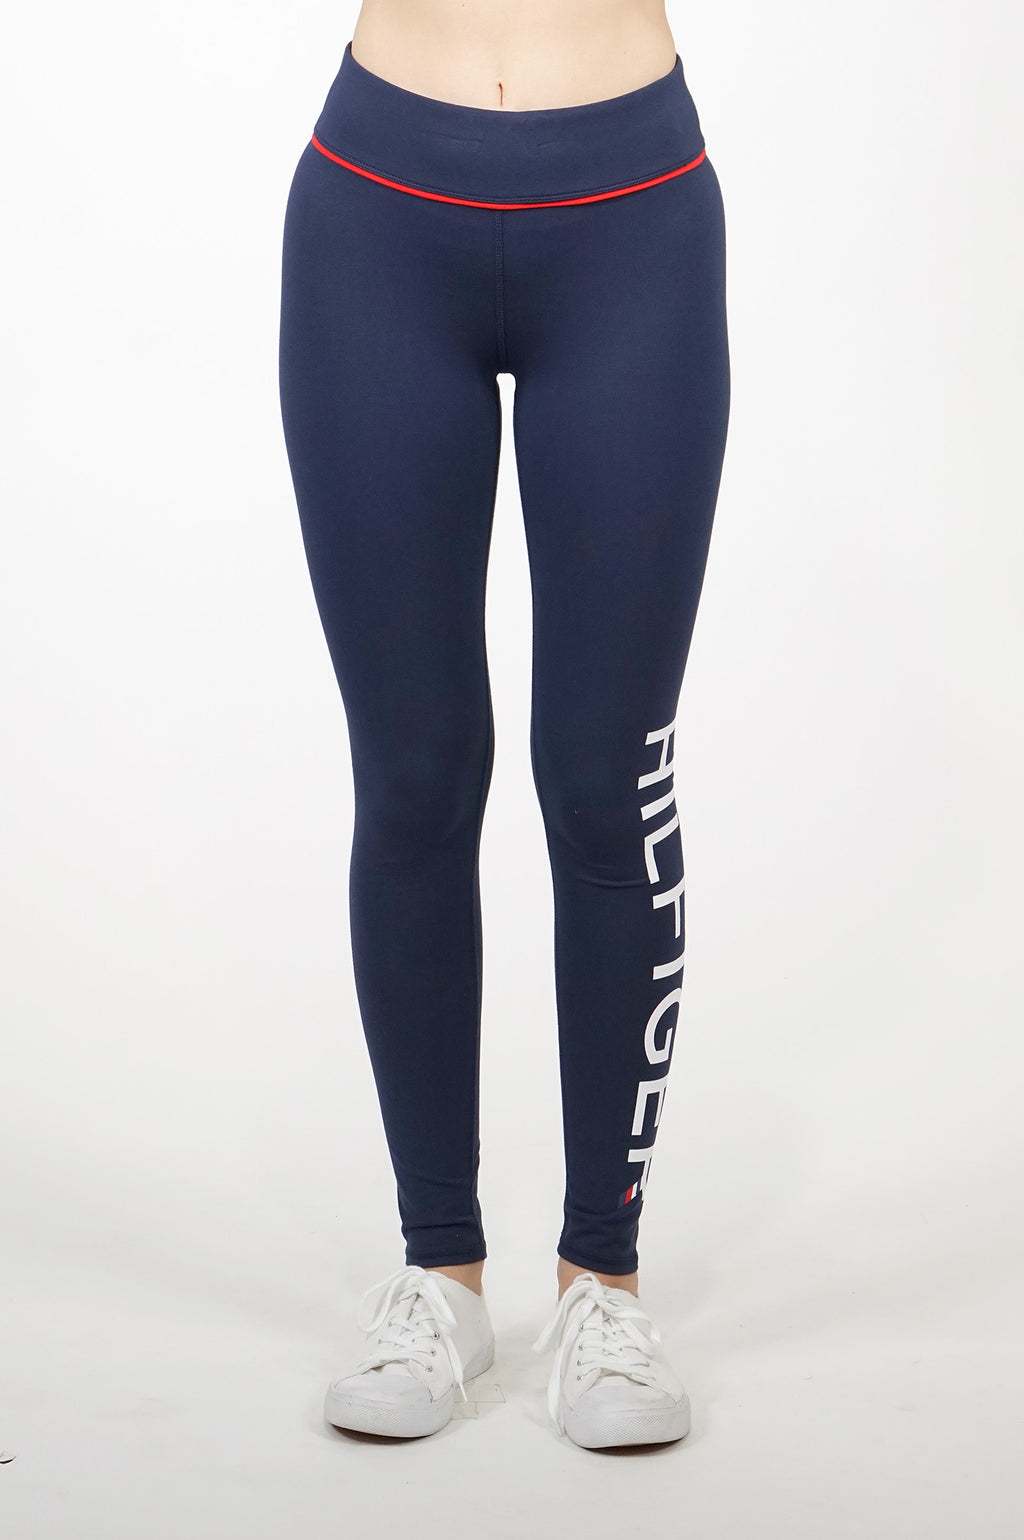 Tommy Hilfiger Activewear Women Midrise Full Length Printed Logo Legging